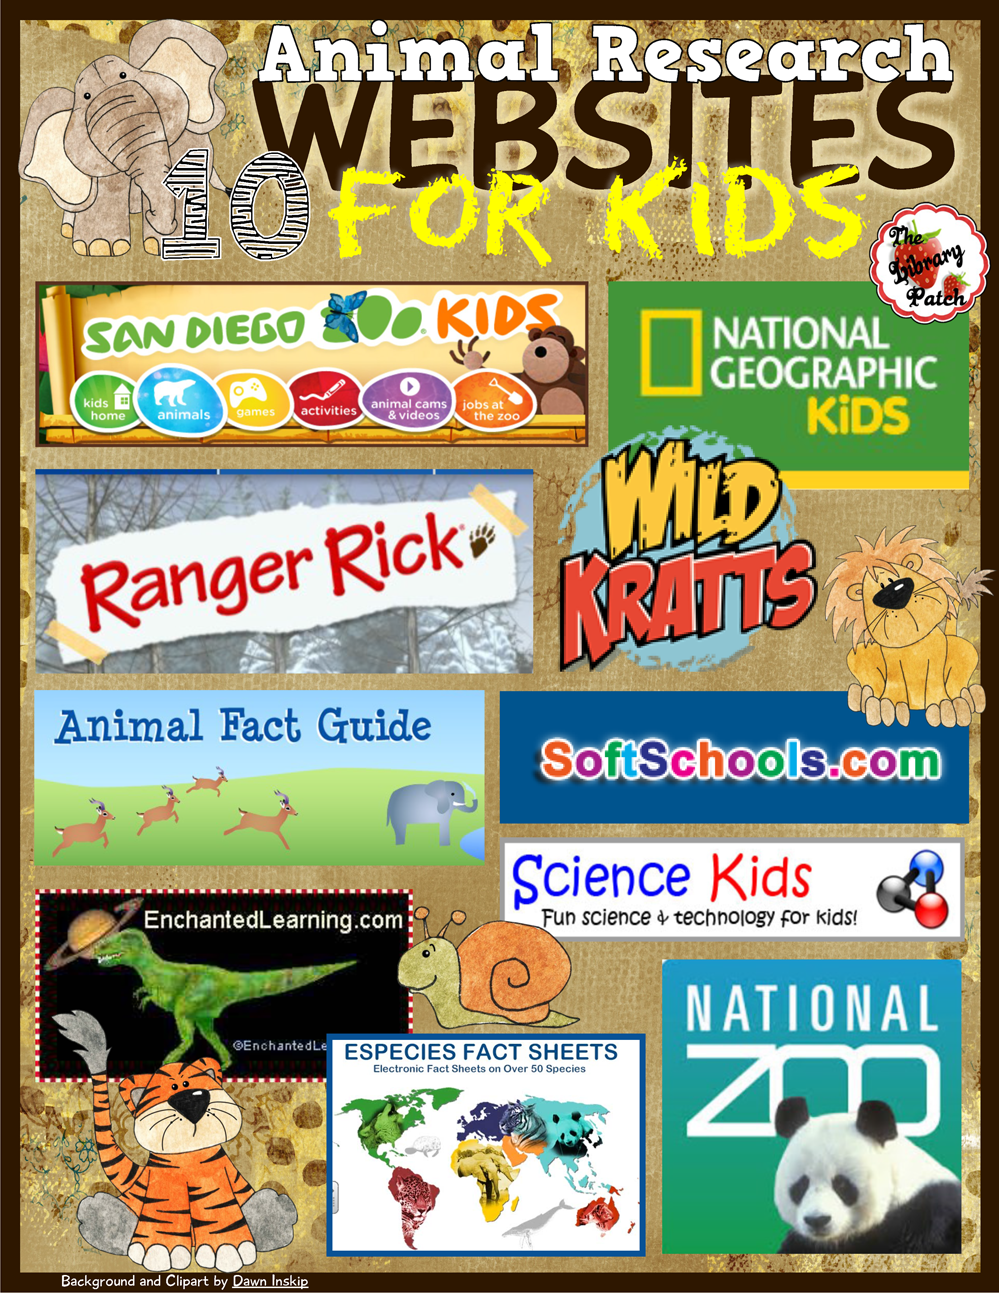 - San Diego Zoo for KidsRanger RickAnimal Fact GuideWild KrattsScience KidsDefenders of WildlifeNational ZooPest World